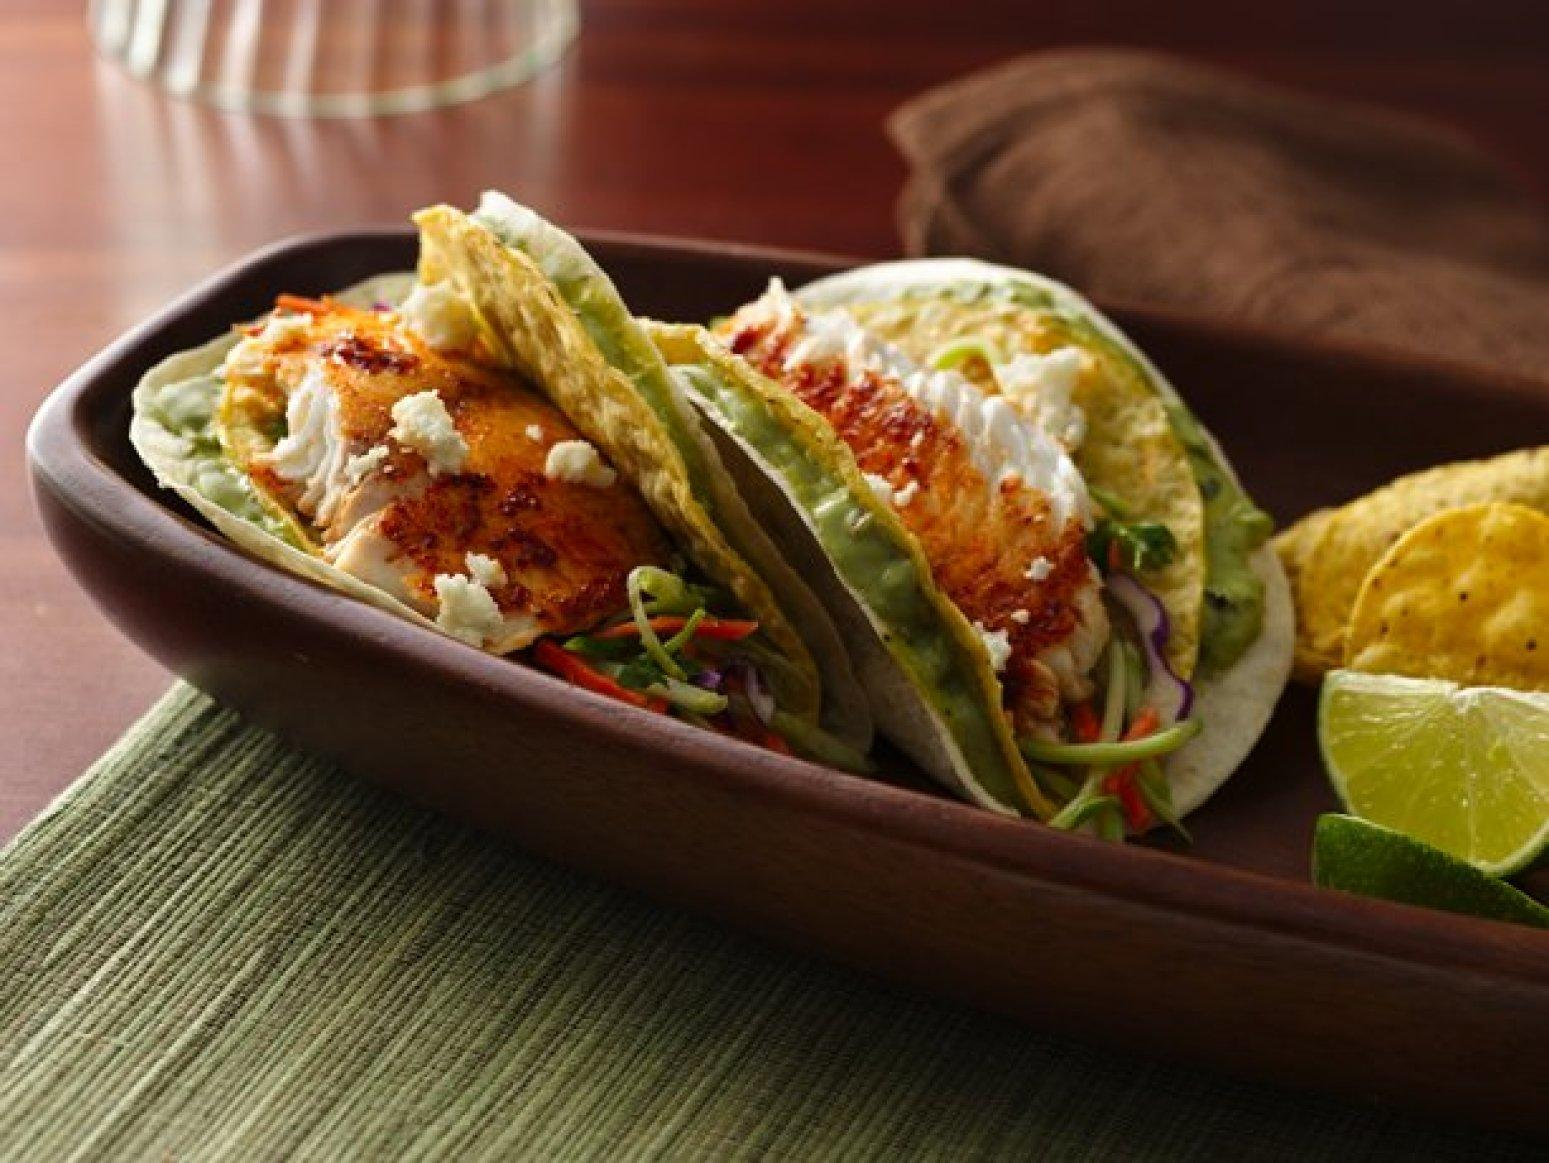 Soft and crunchy fish tacos recipe just a pinch recipes for Fish taco recipe